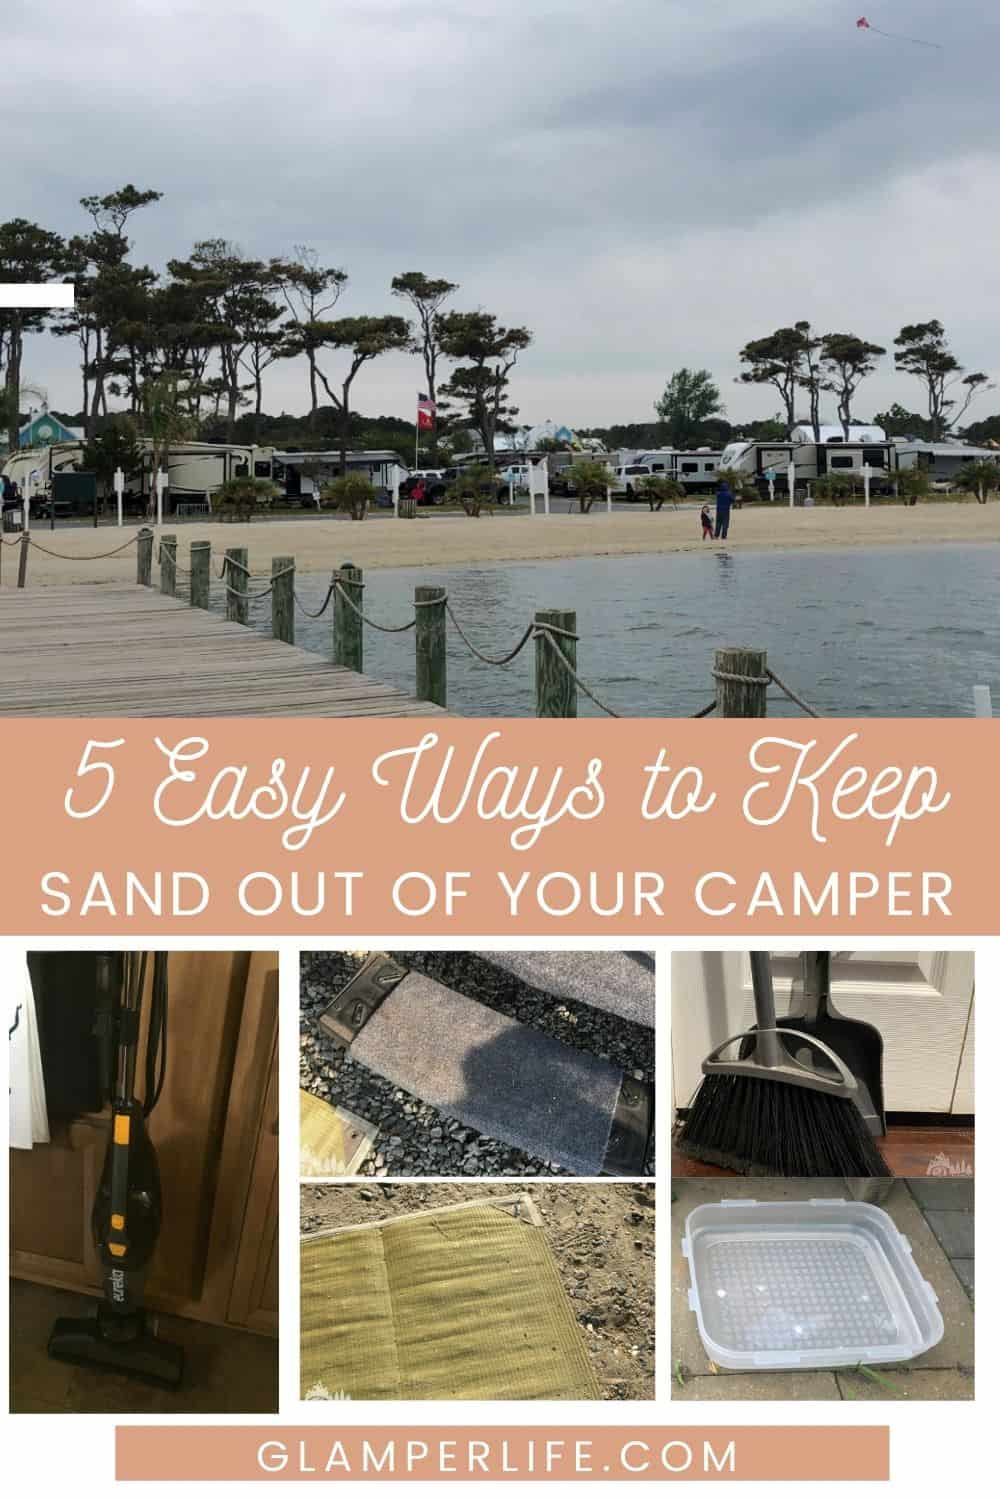 Keep Sand Out of Camper Pin